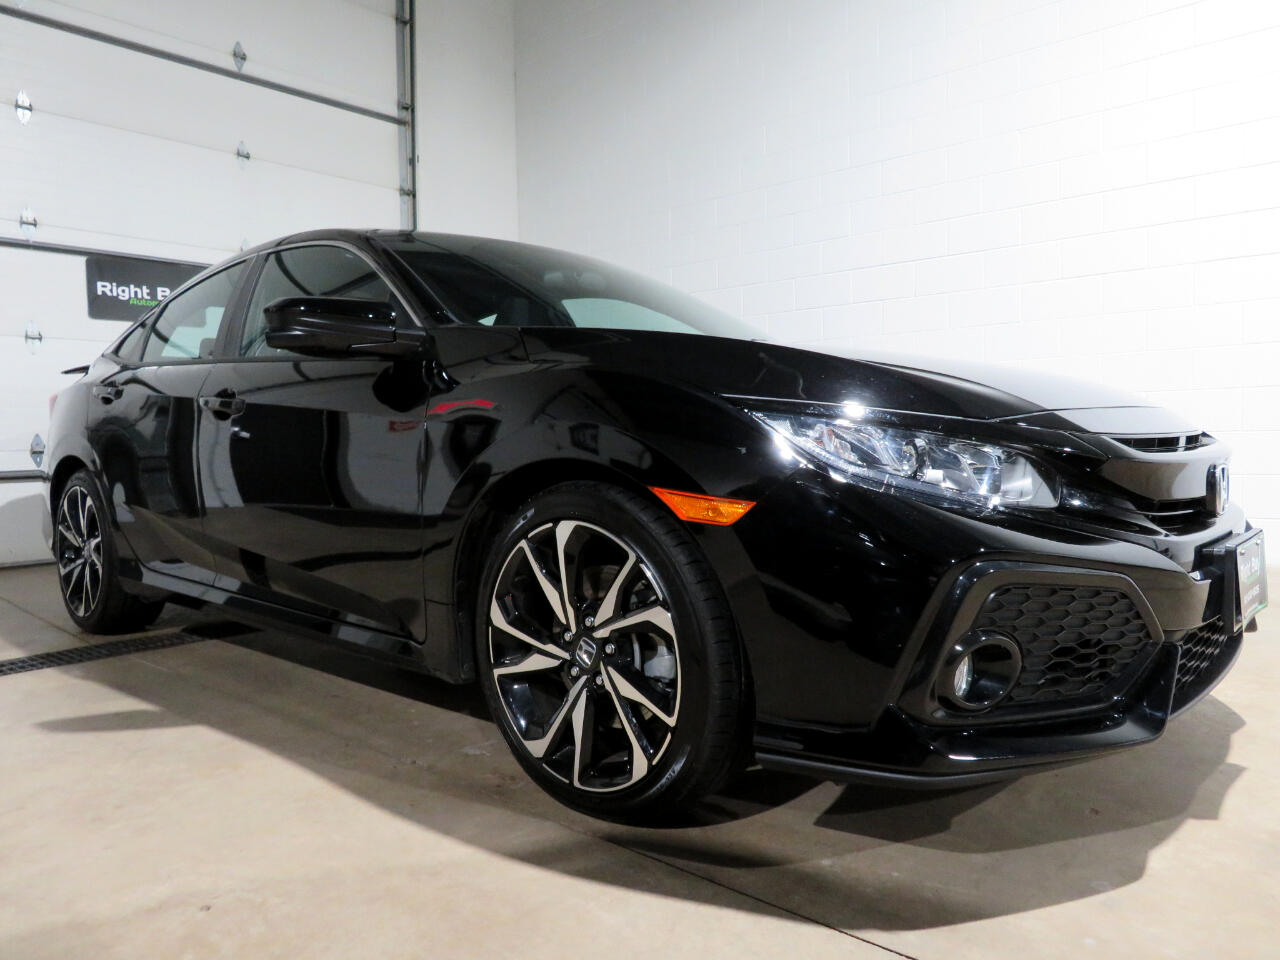 Honda Civic Si 4dr Sedan 6M 2019